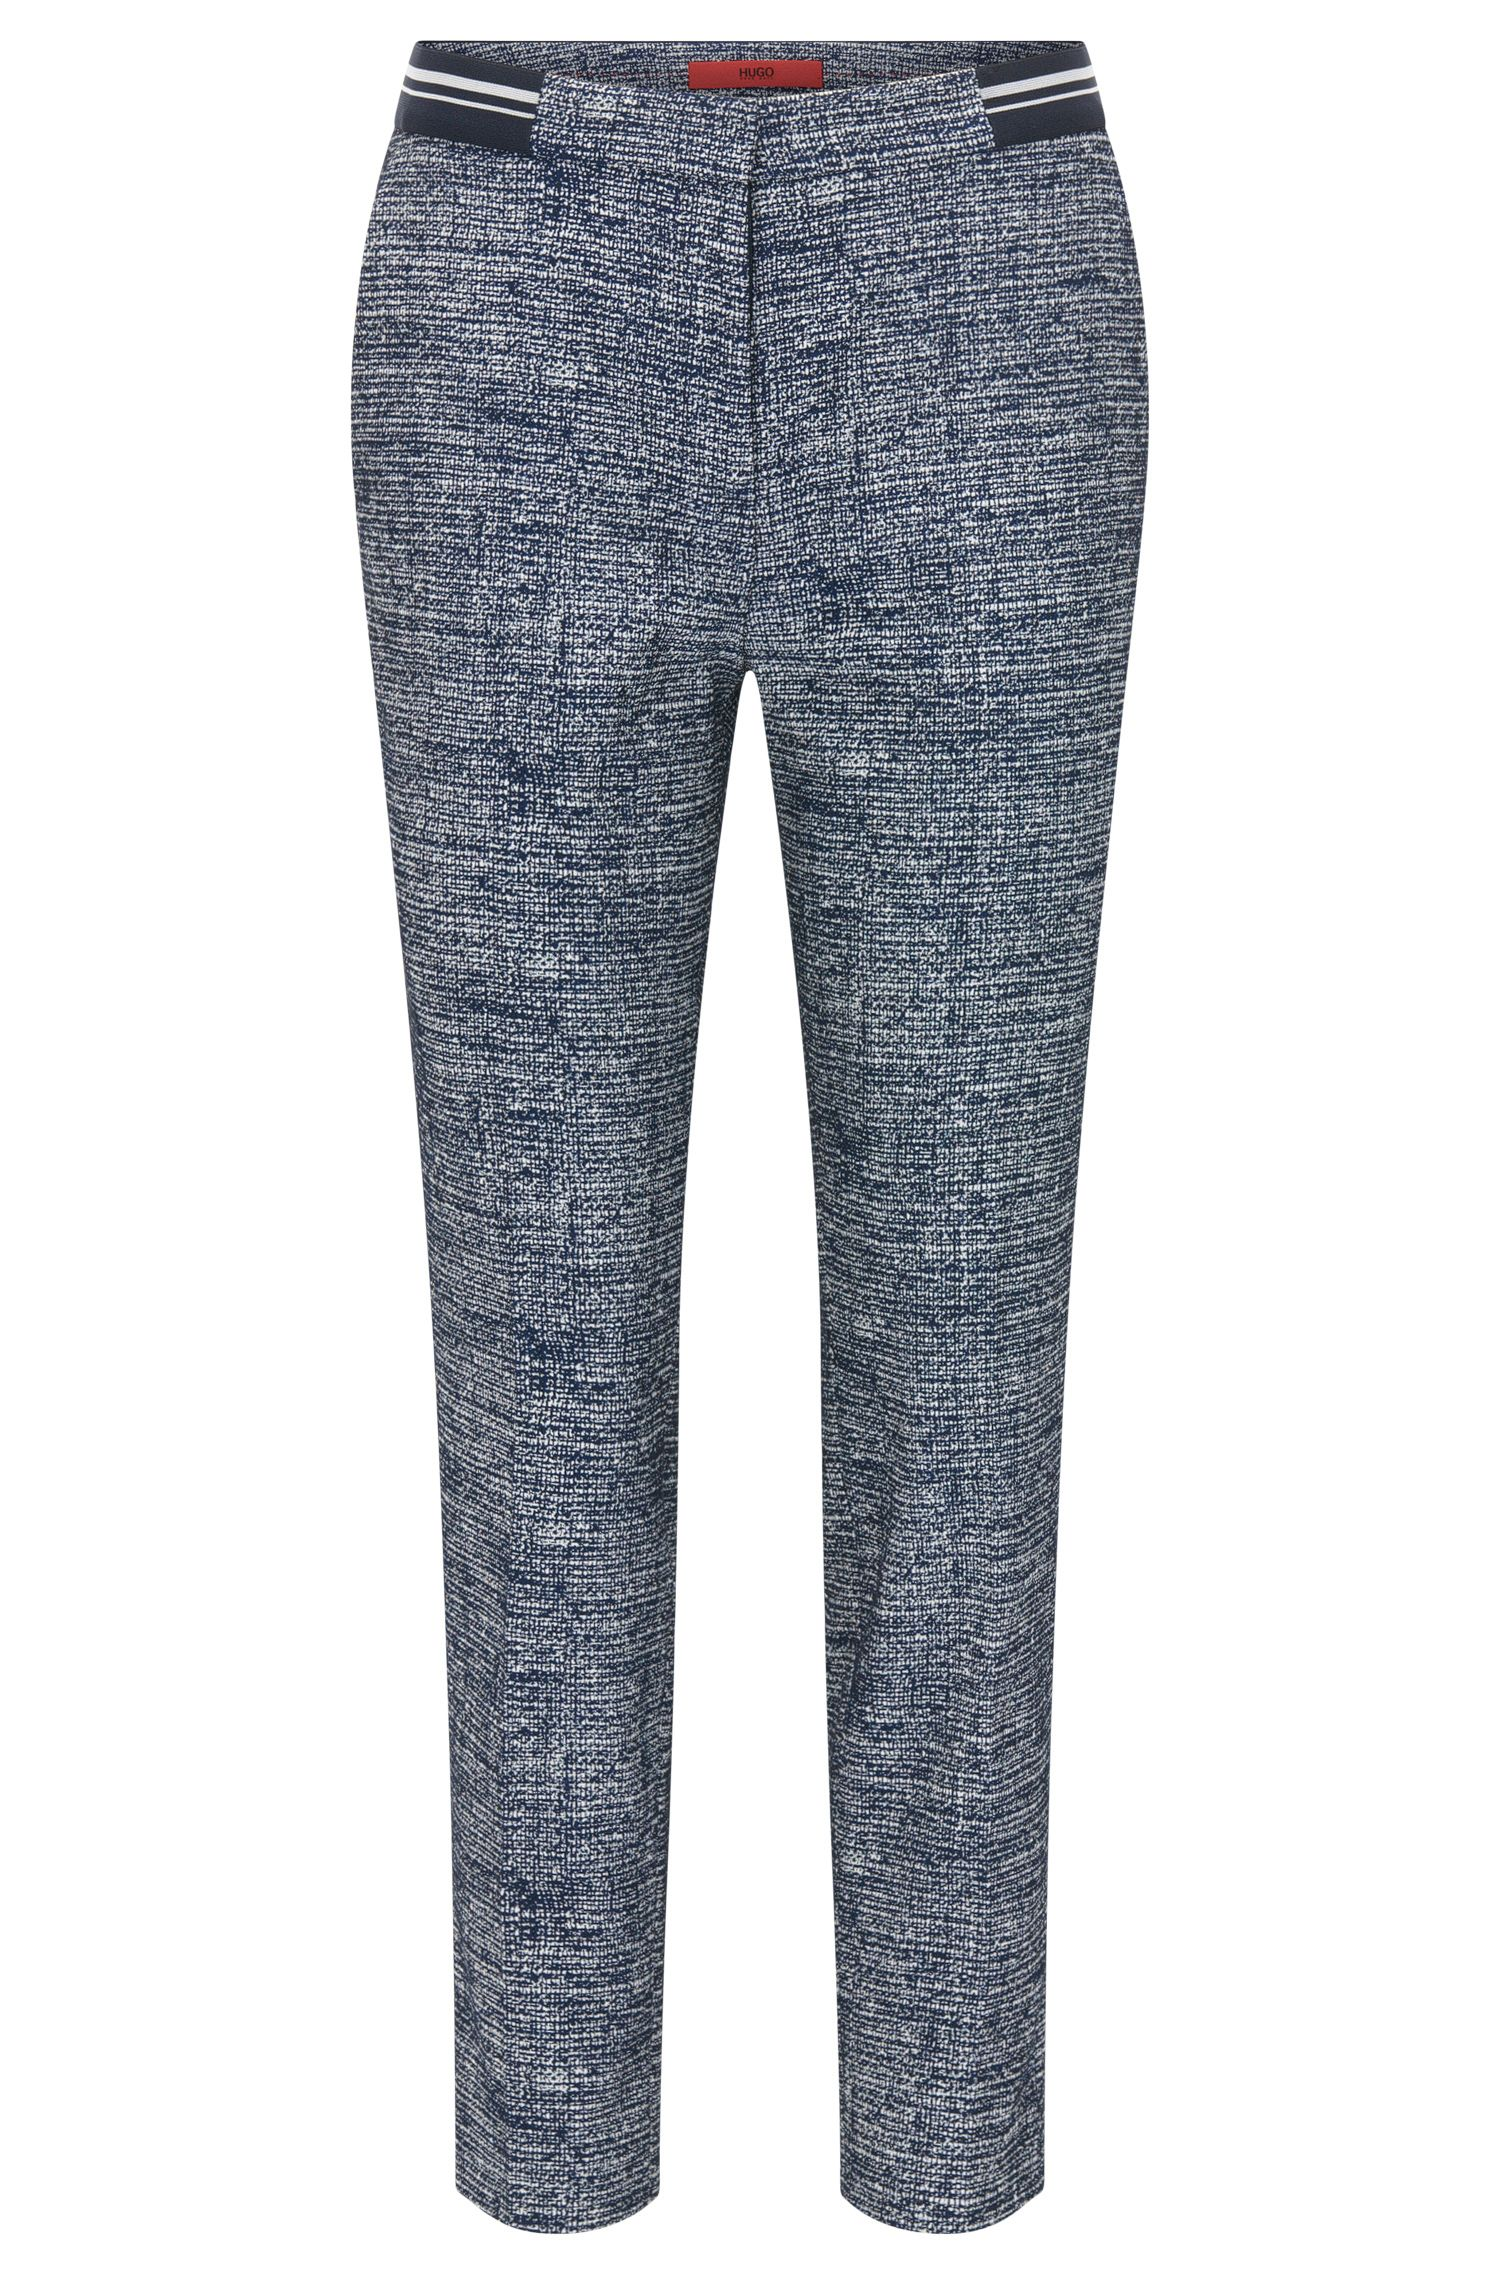 Pantalon Slim Fit en tweed de coton mélangé